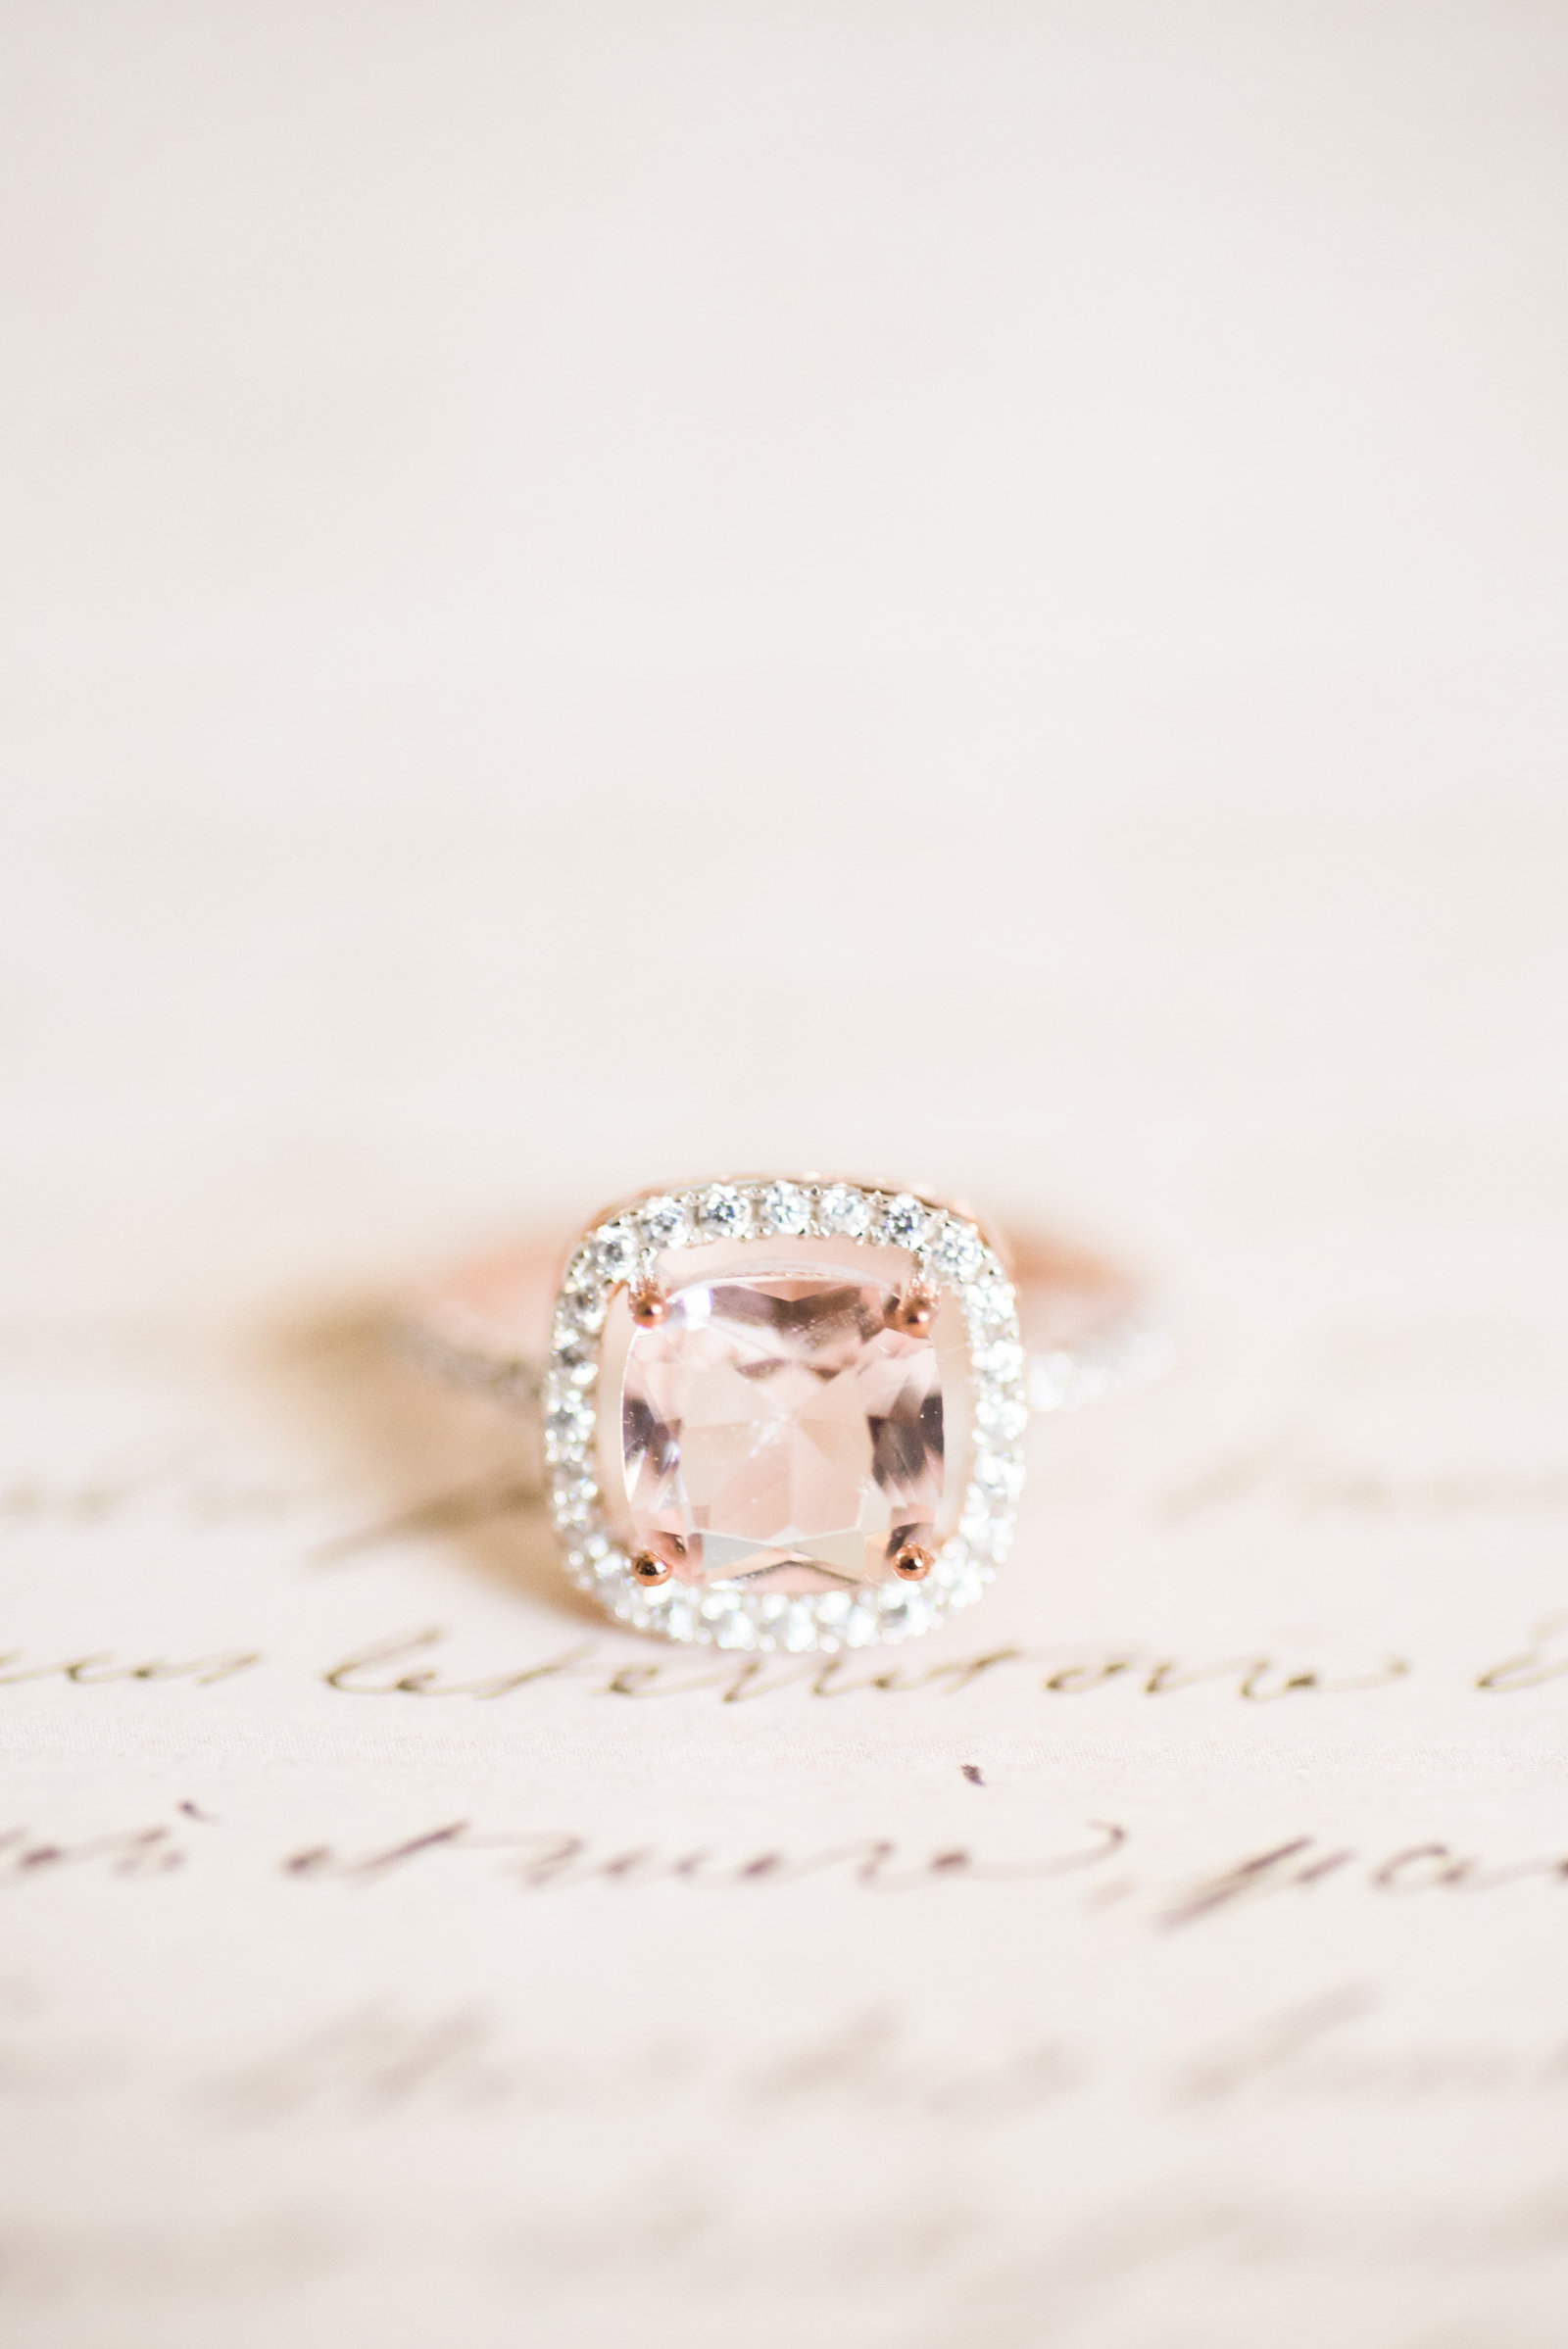 Rose gold wedding ring photo